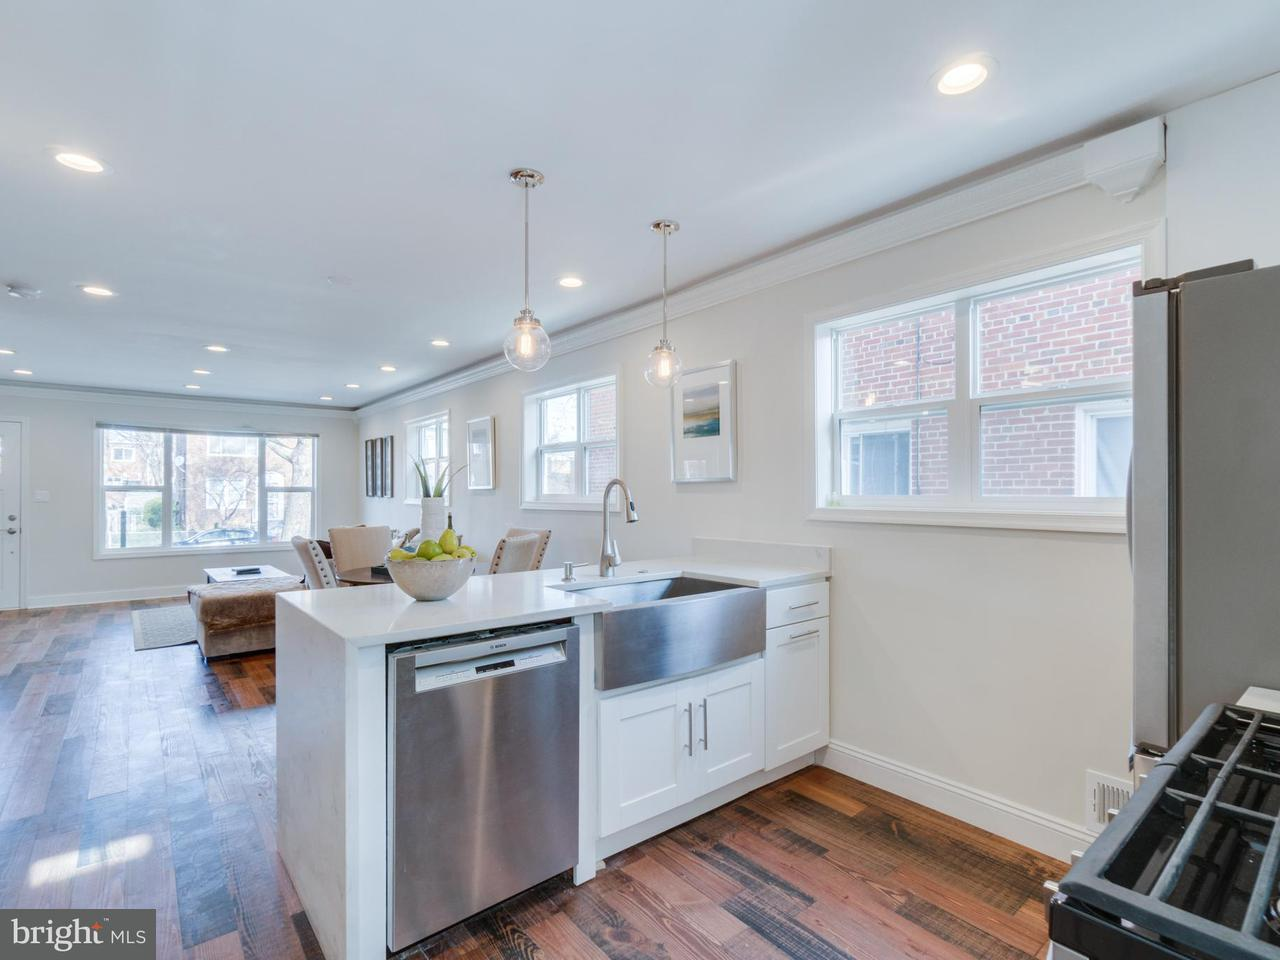 Additional photo for property listing at 1239 Emerson St Ne 1239 Emerson St Ne Washington, District Of Columbia 20017 United States